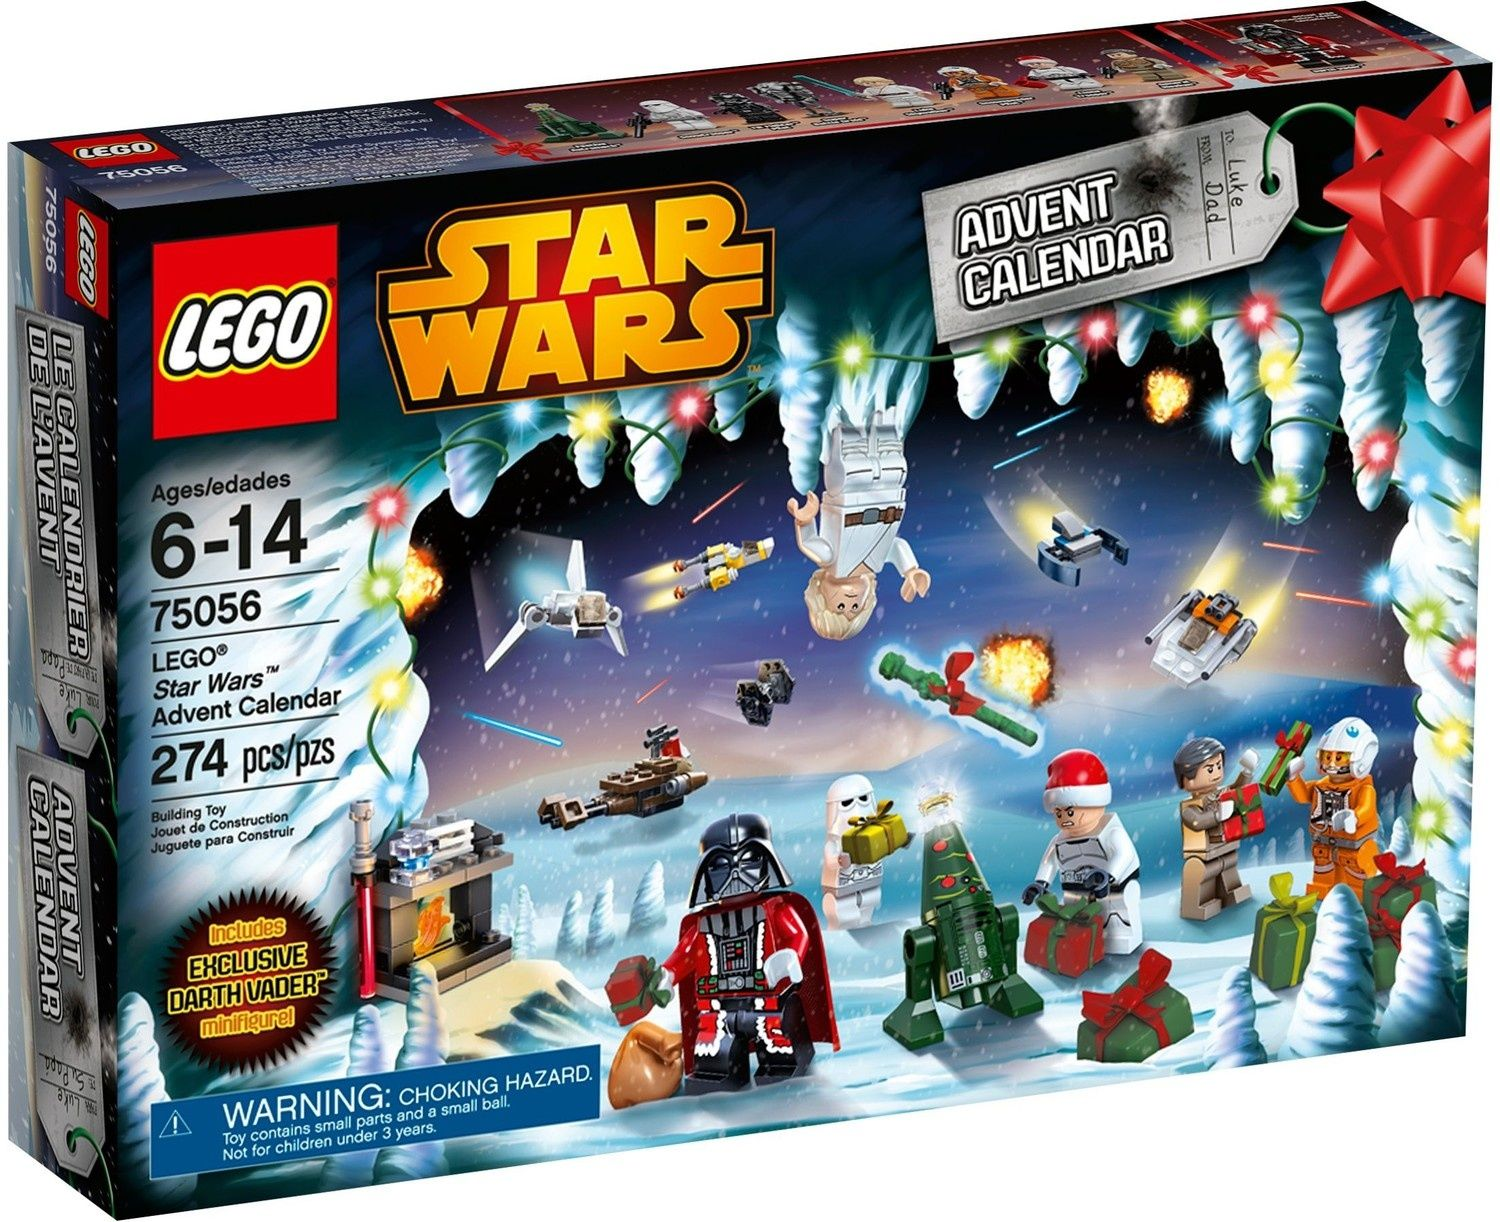 Calendrier Star Wars 2019.Star Wars 2014 Advent Calendar Lego Star Wars Set 75056